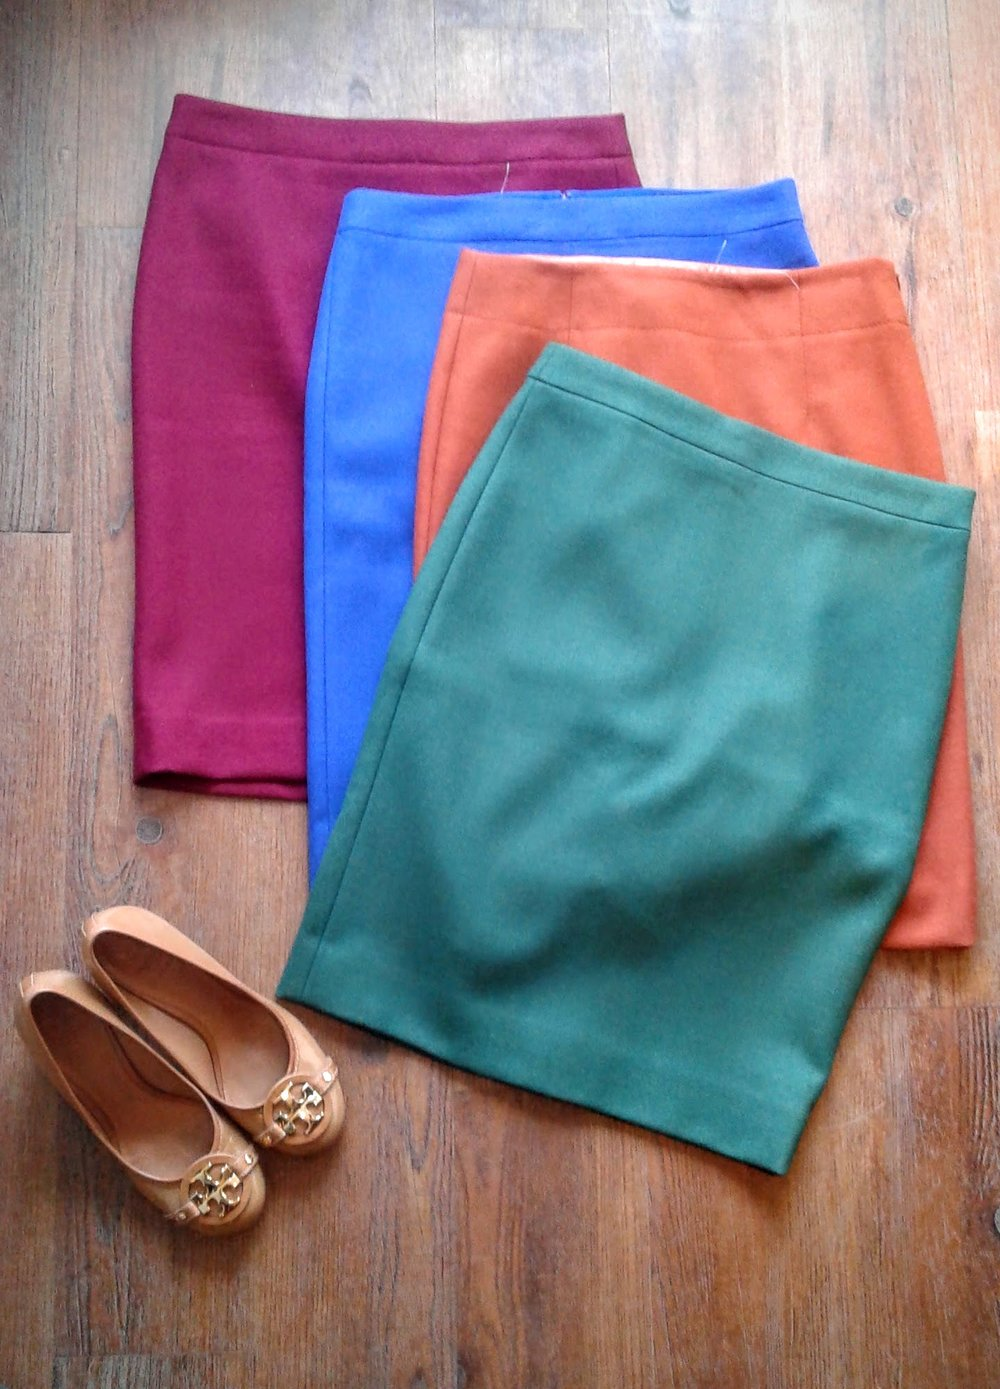 JCrew wool skirts, sizes 4-10, $42 each